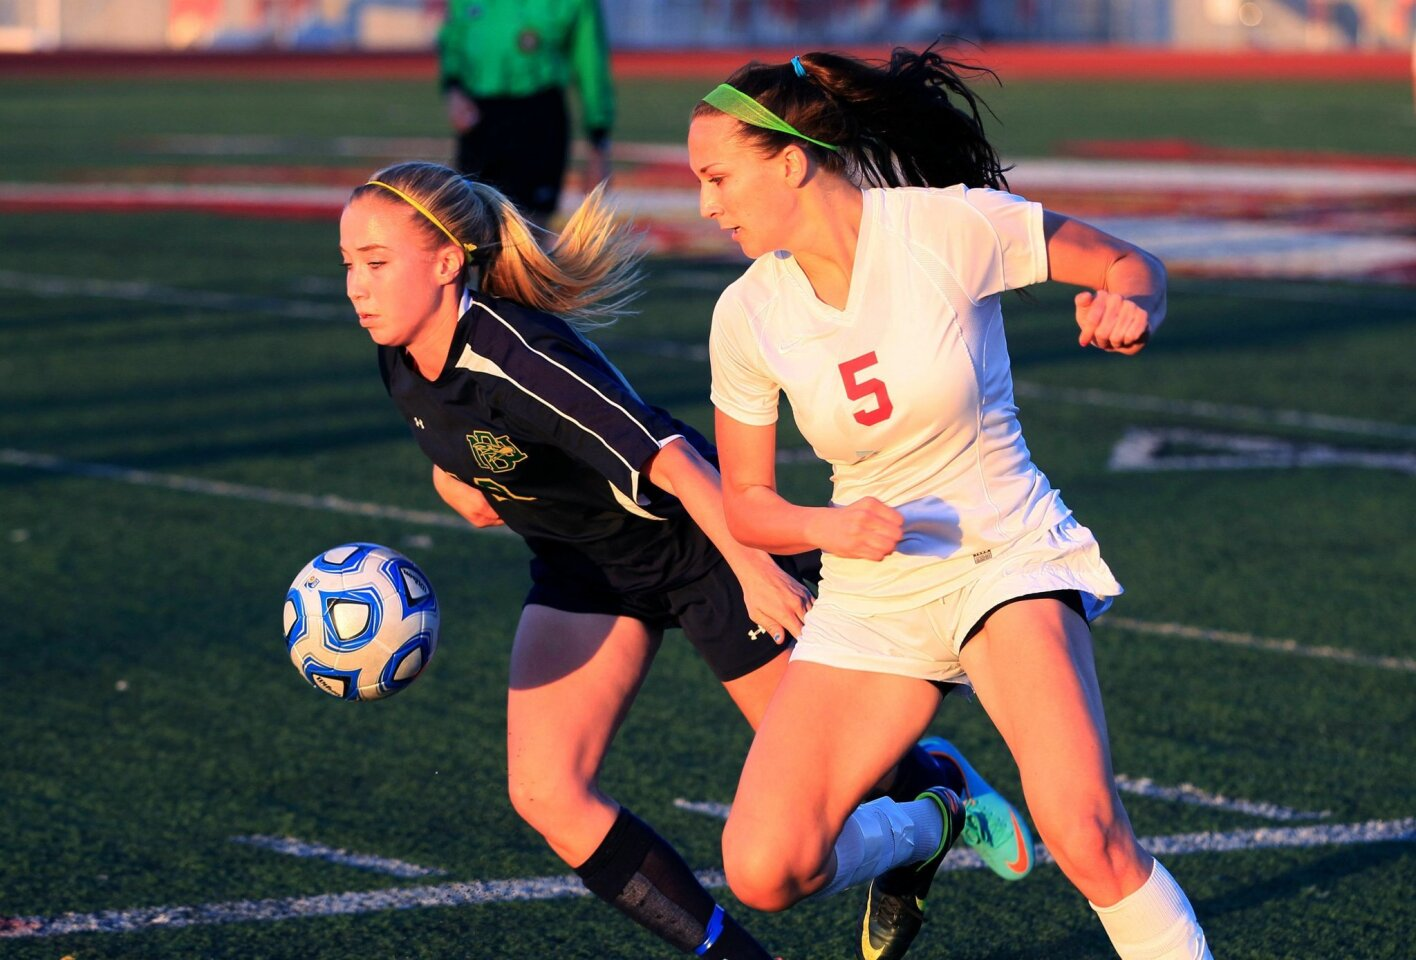 Cathedral Catholic advances to the final